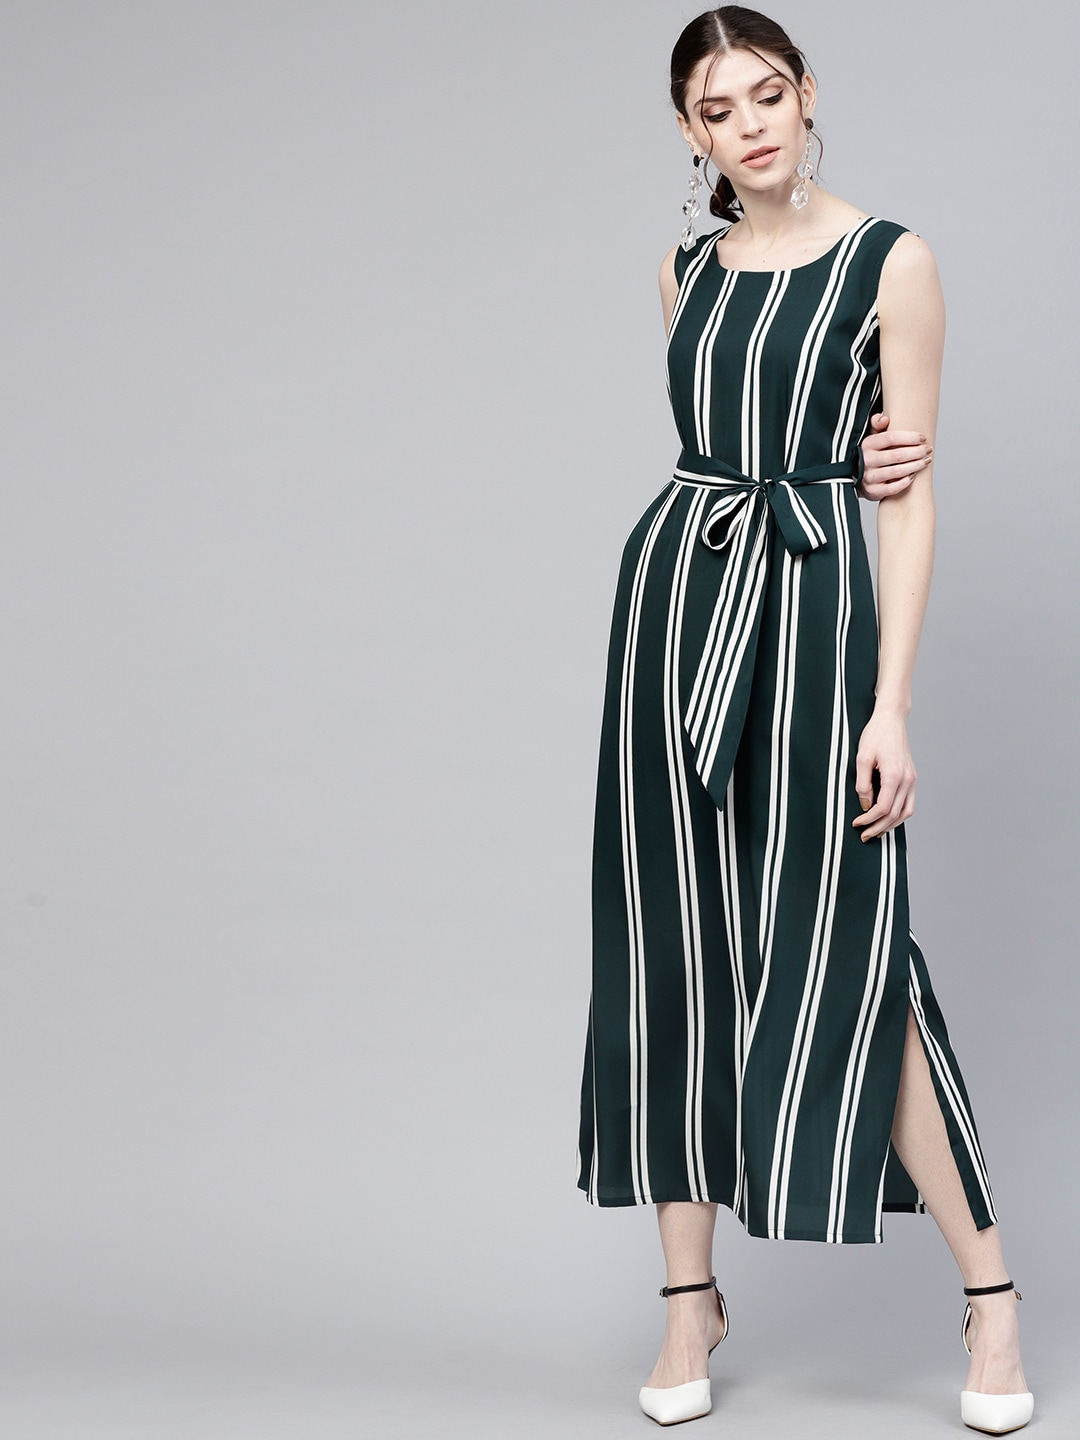 994b1d8c230 Emerald Green Maxi Dress Marks And Spencer